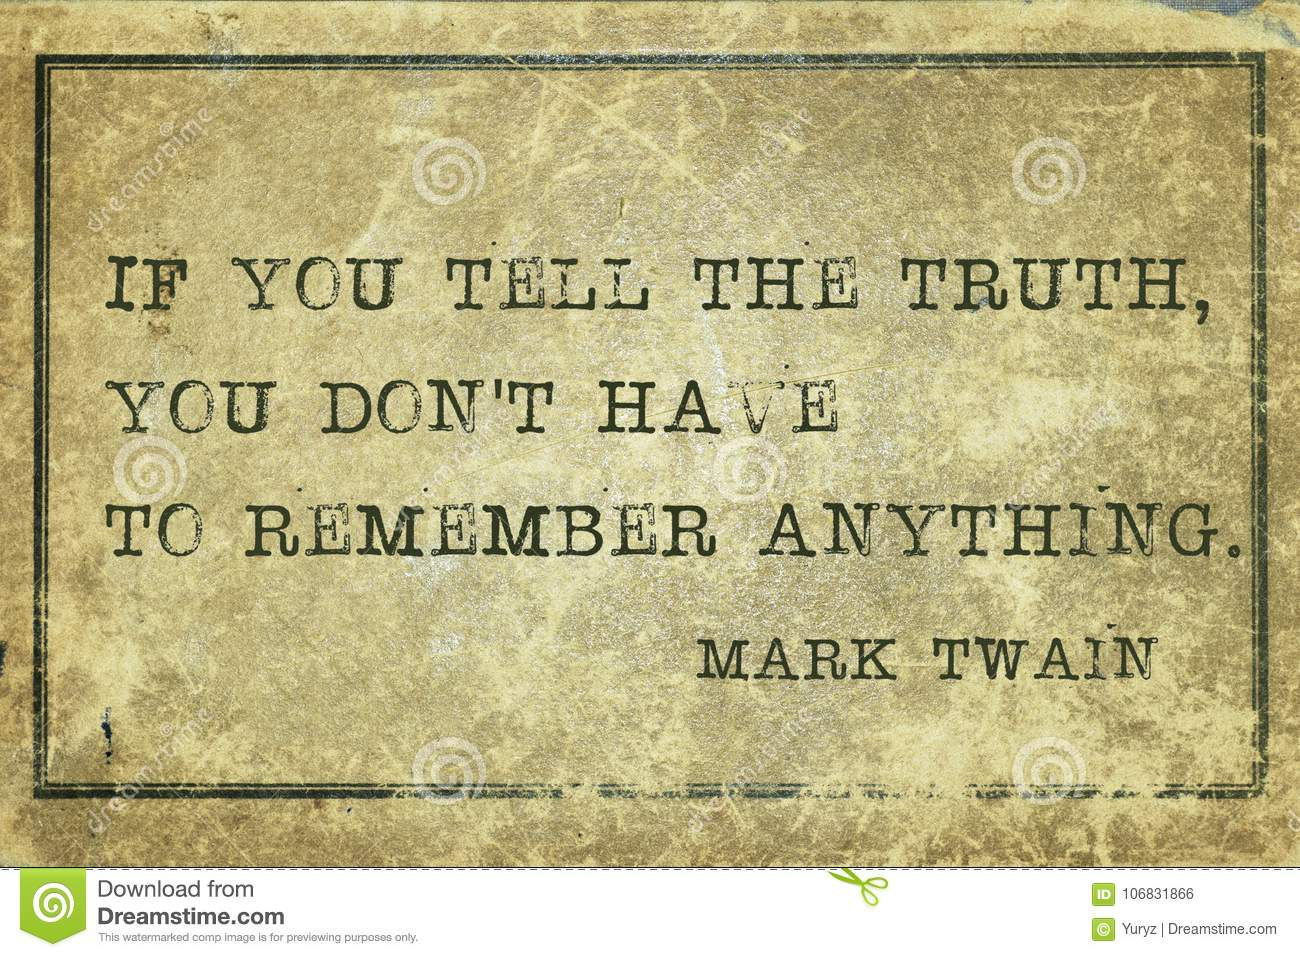 Download Truth MT stock photo. Image of ancient, american, writer - 106831866